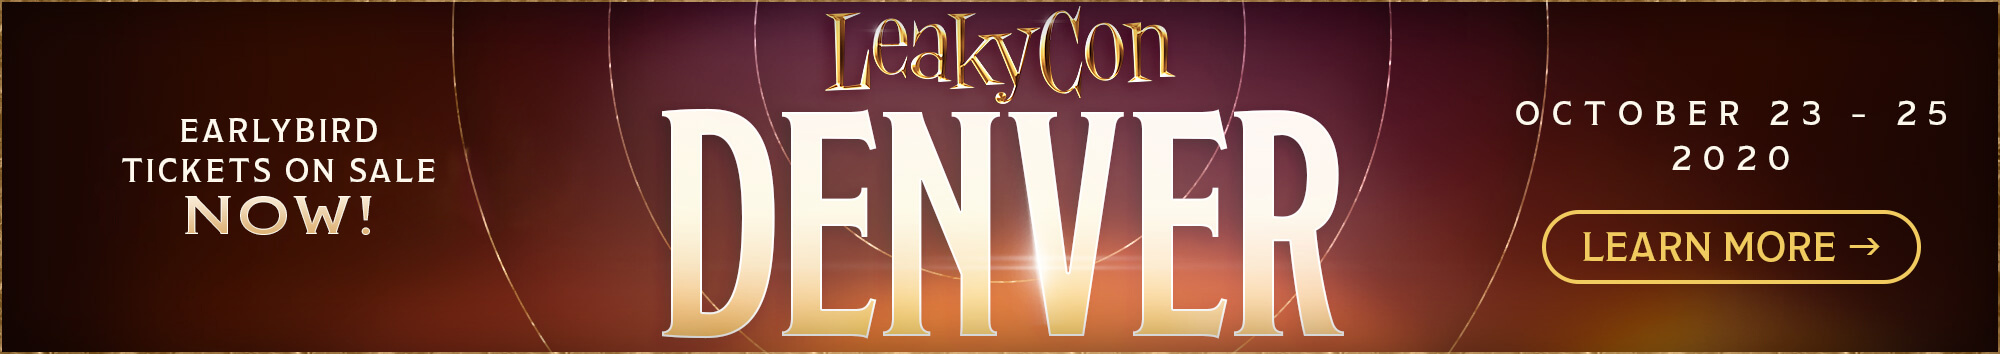 LeakyCon Denver 2020